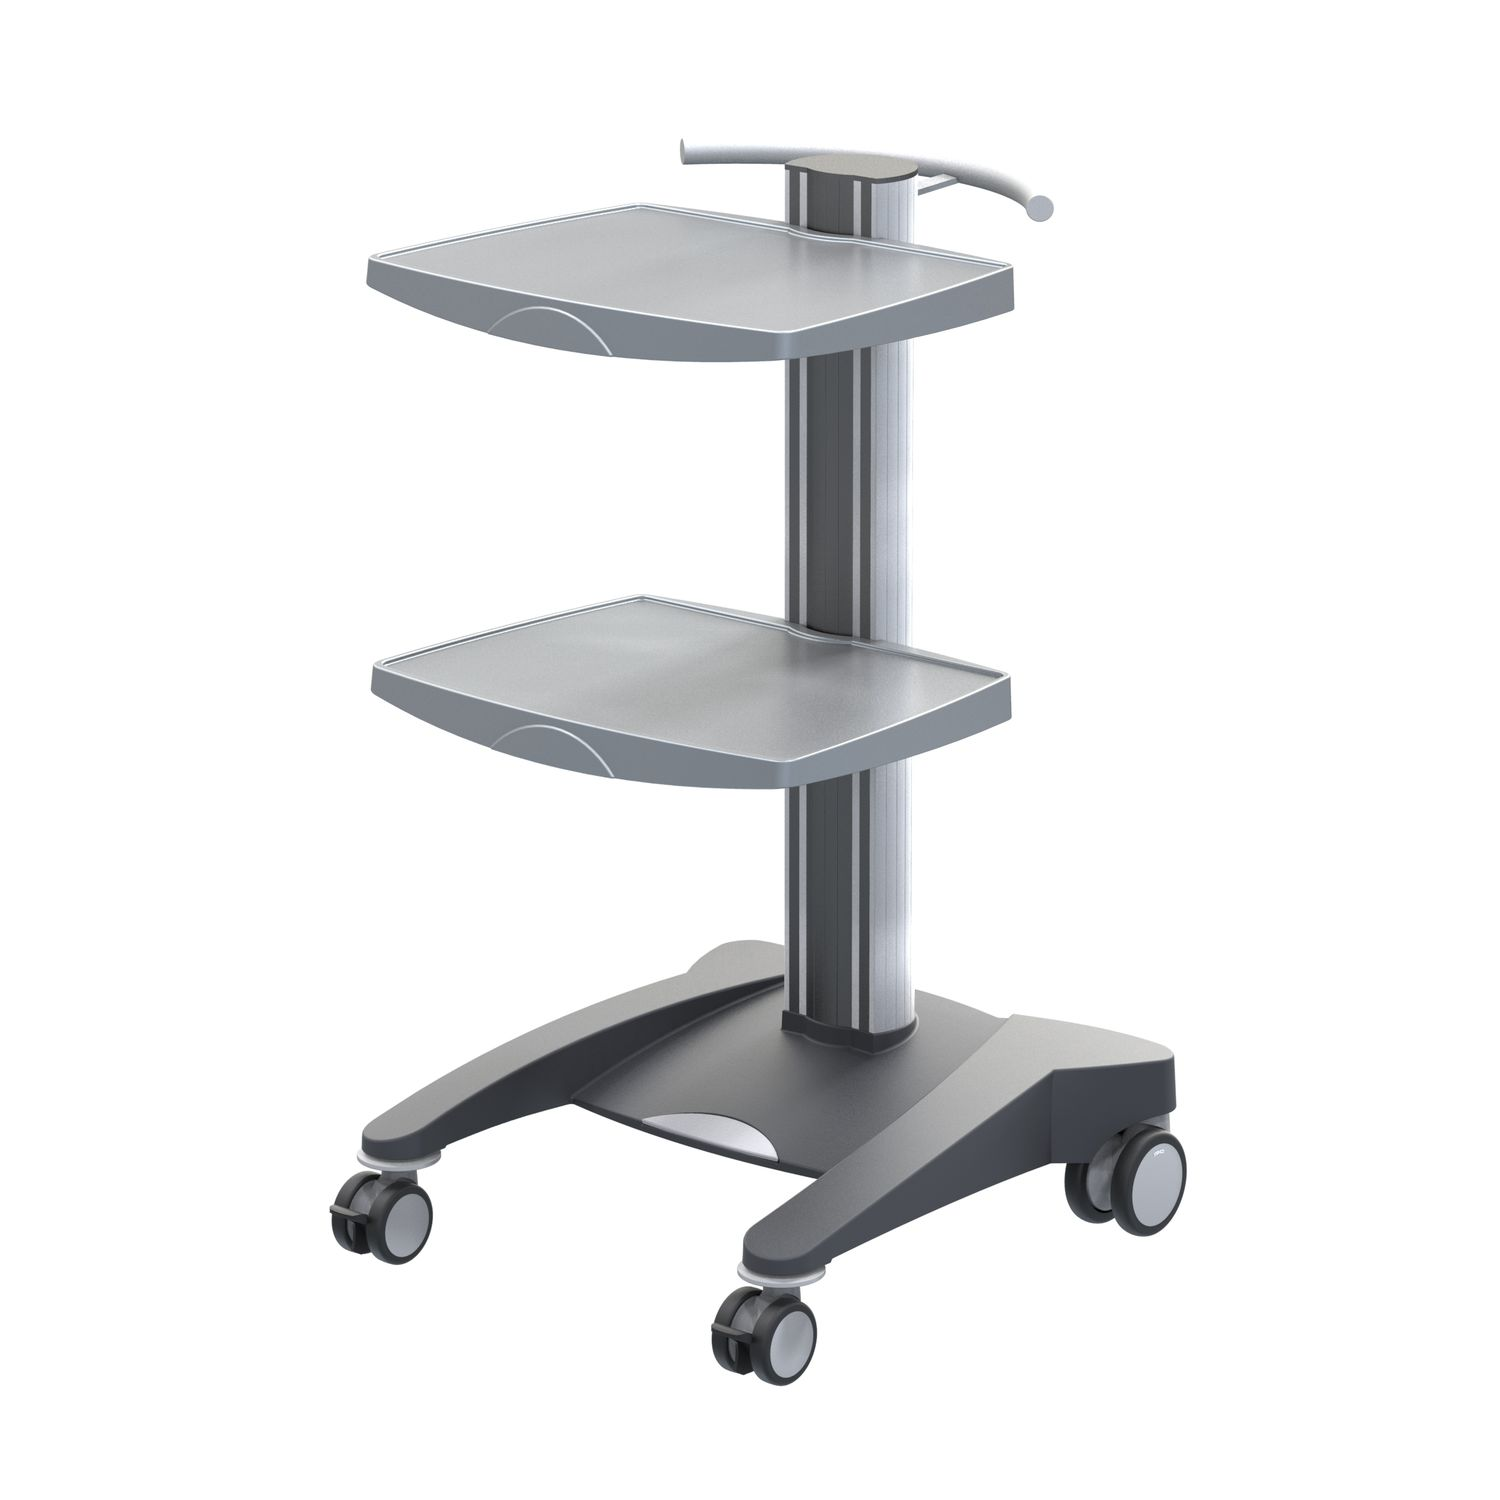 Multi-function trolley / equipment / for medical devices / 2-tray